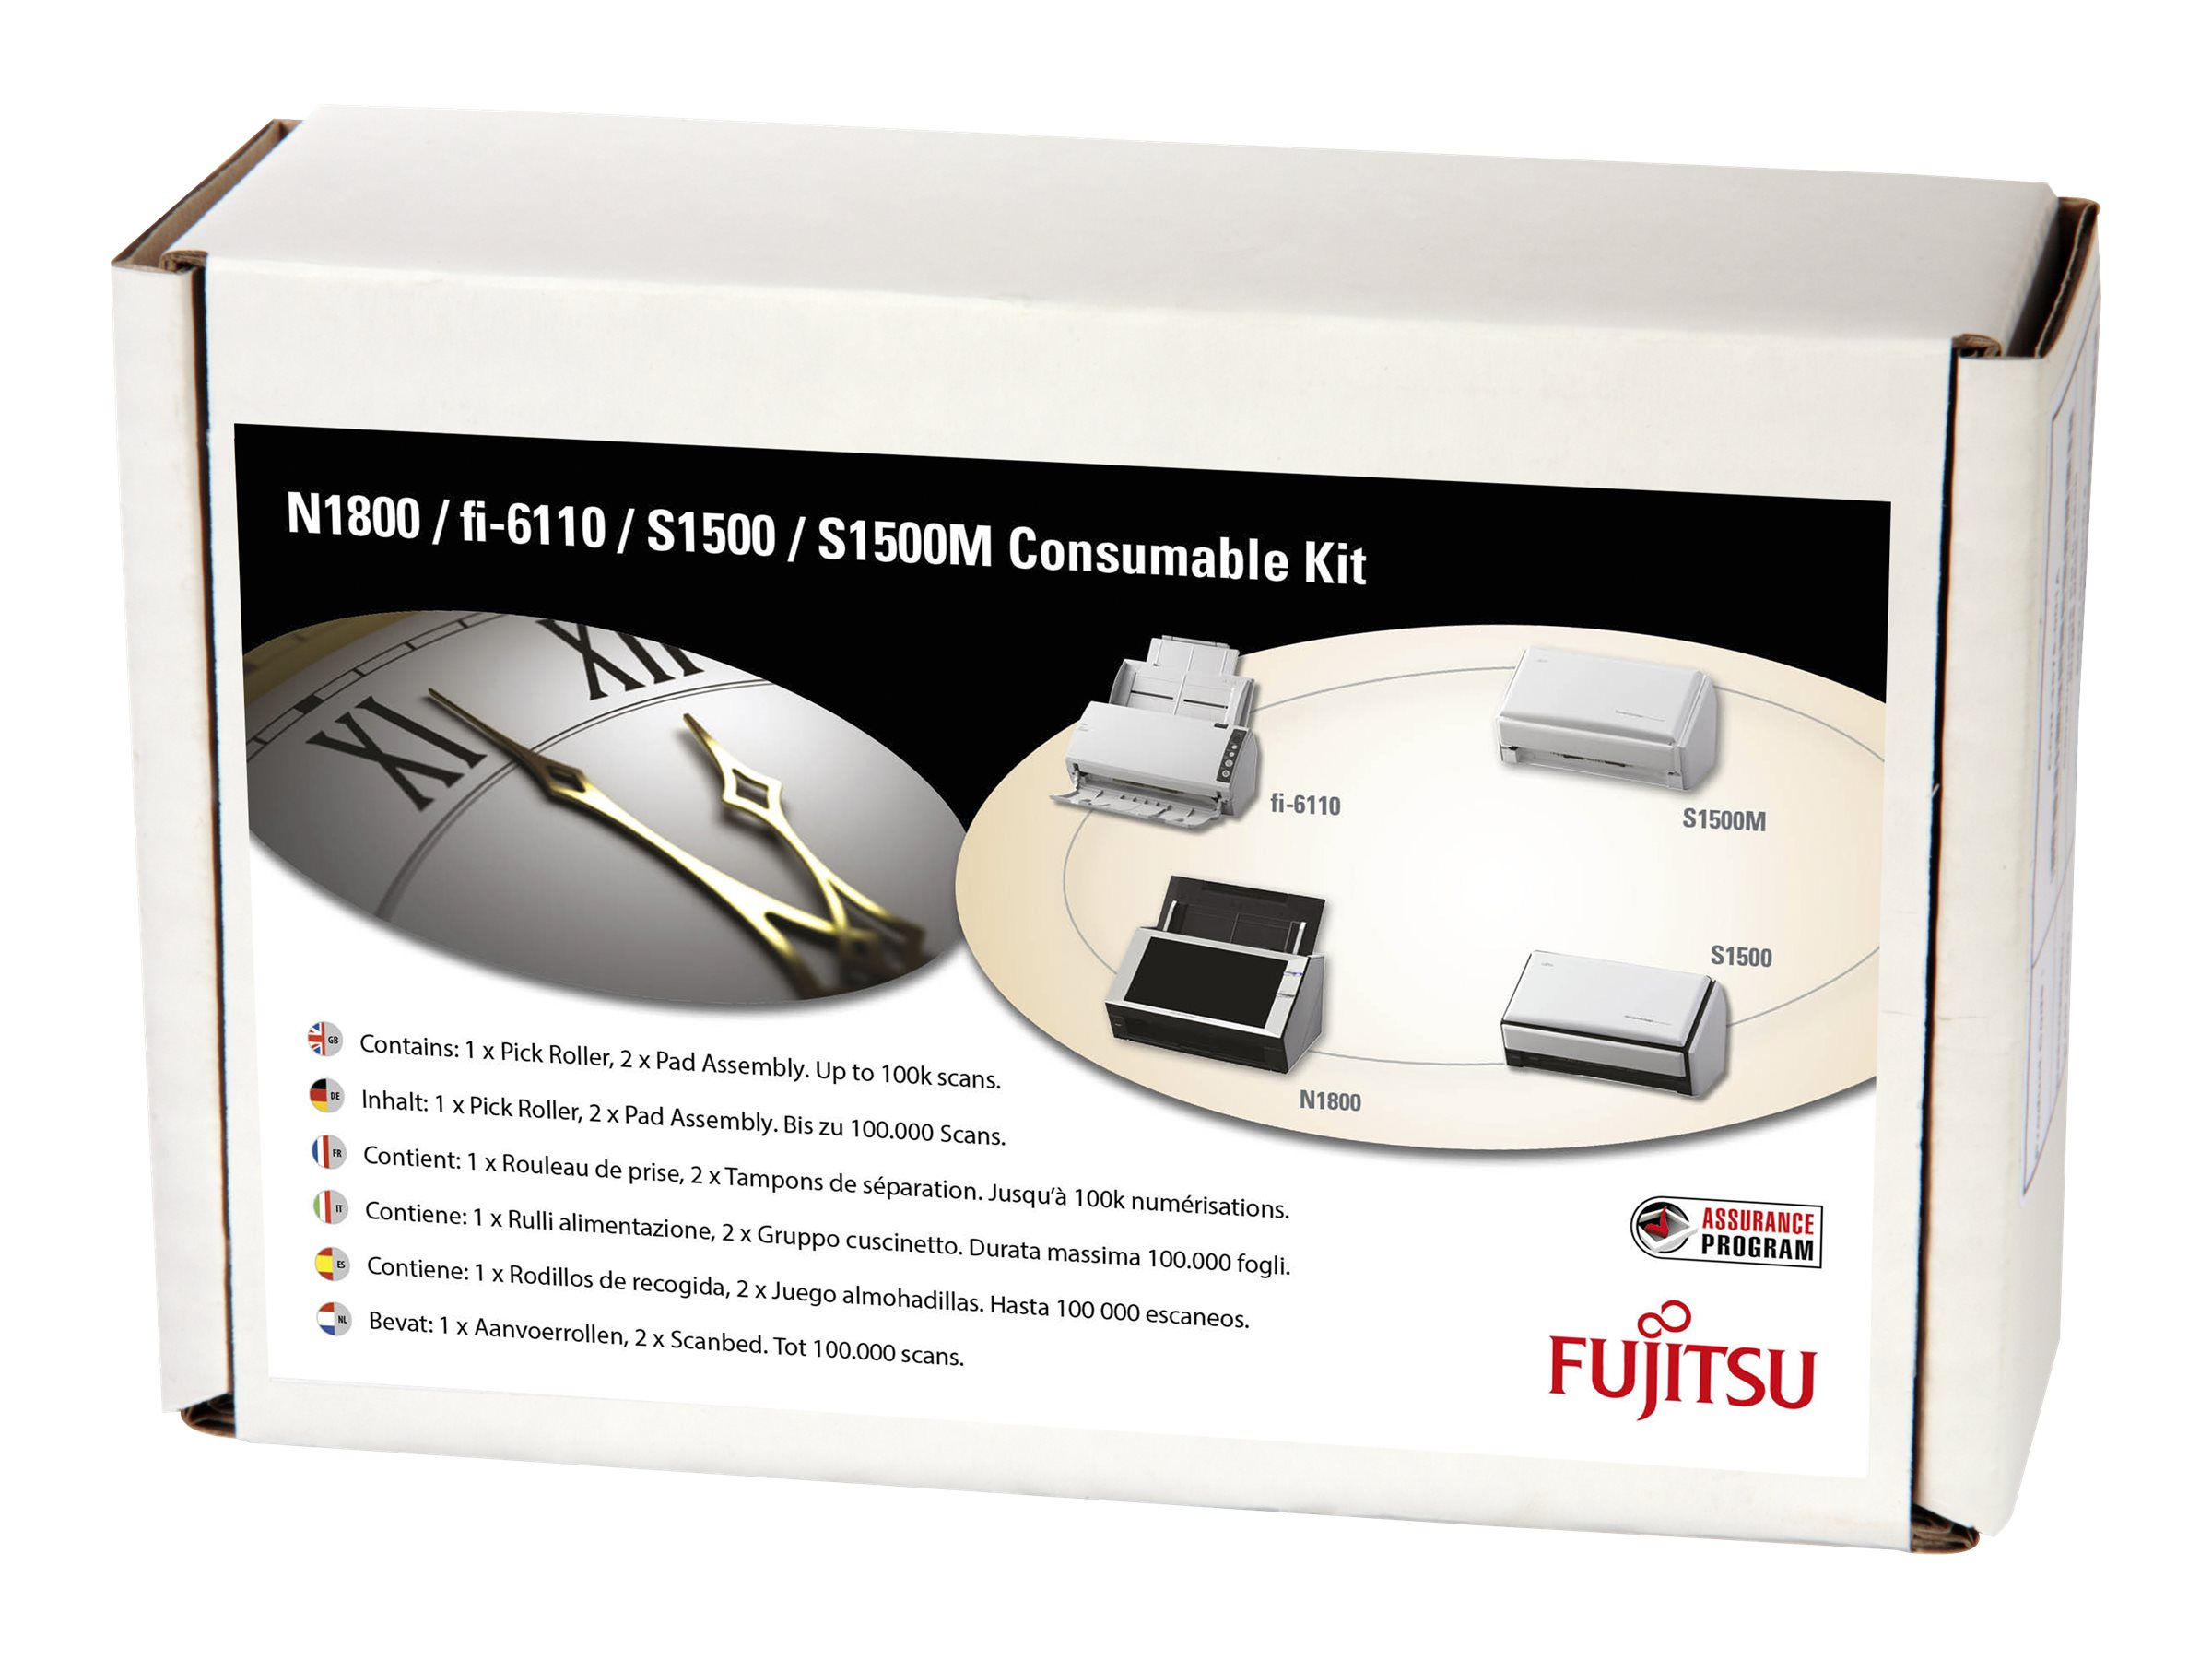 Fujitsu Consumable Kit - Scanner - Verbrauchsmaterialienkit - für fi-6110; ScanSnap N1800, S1500, S1500 Deluxe, S1500 Deluxe Bundle, S1500M